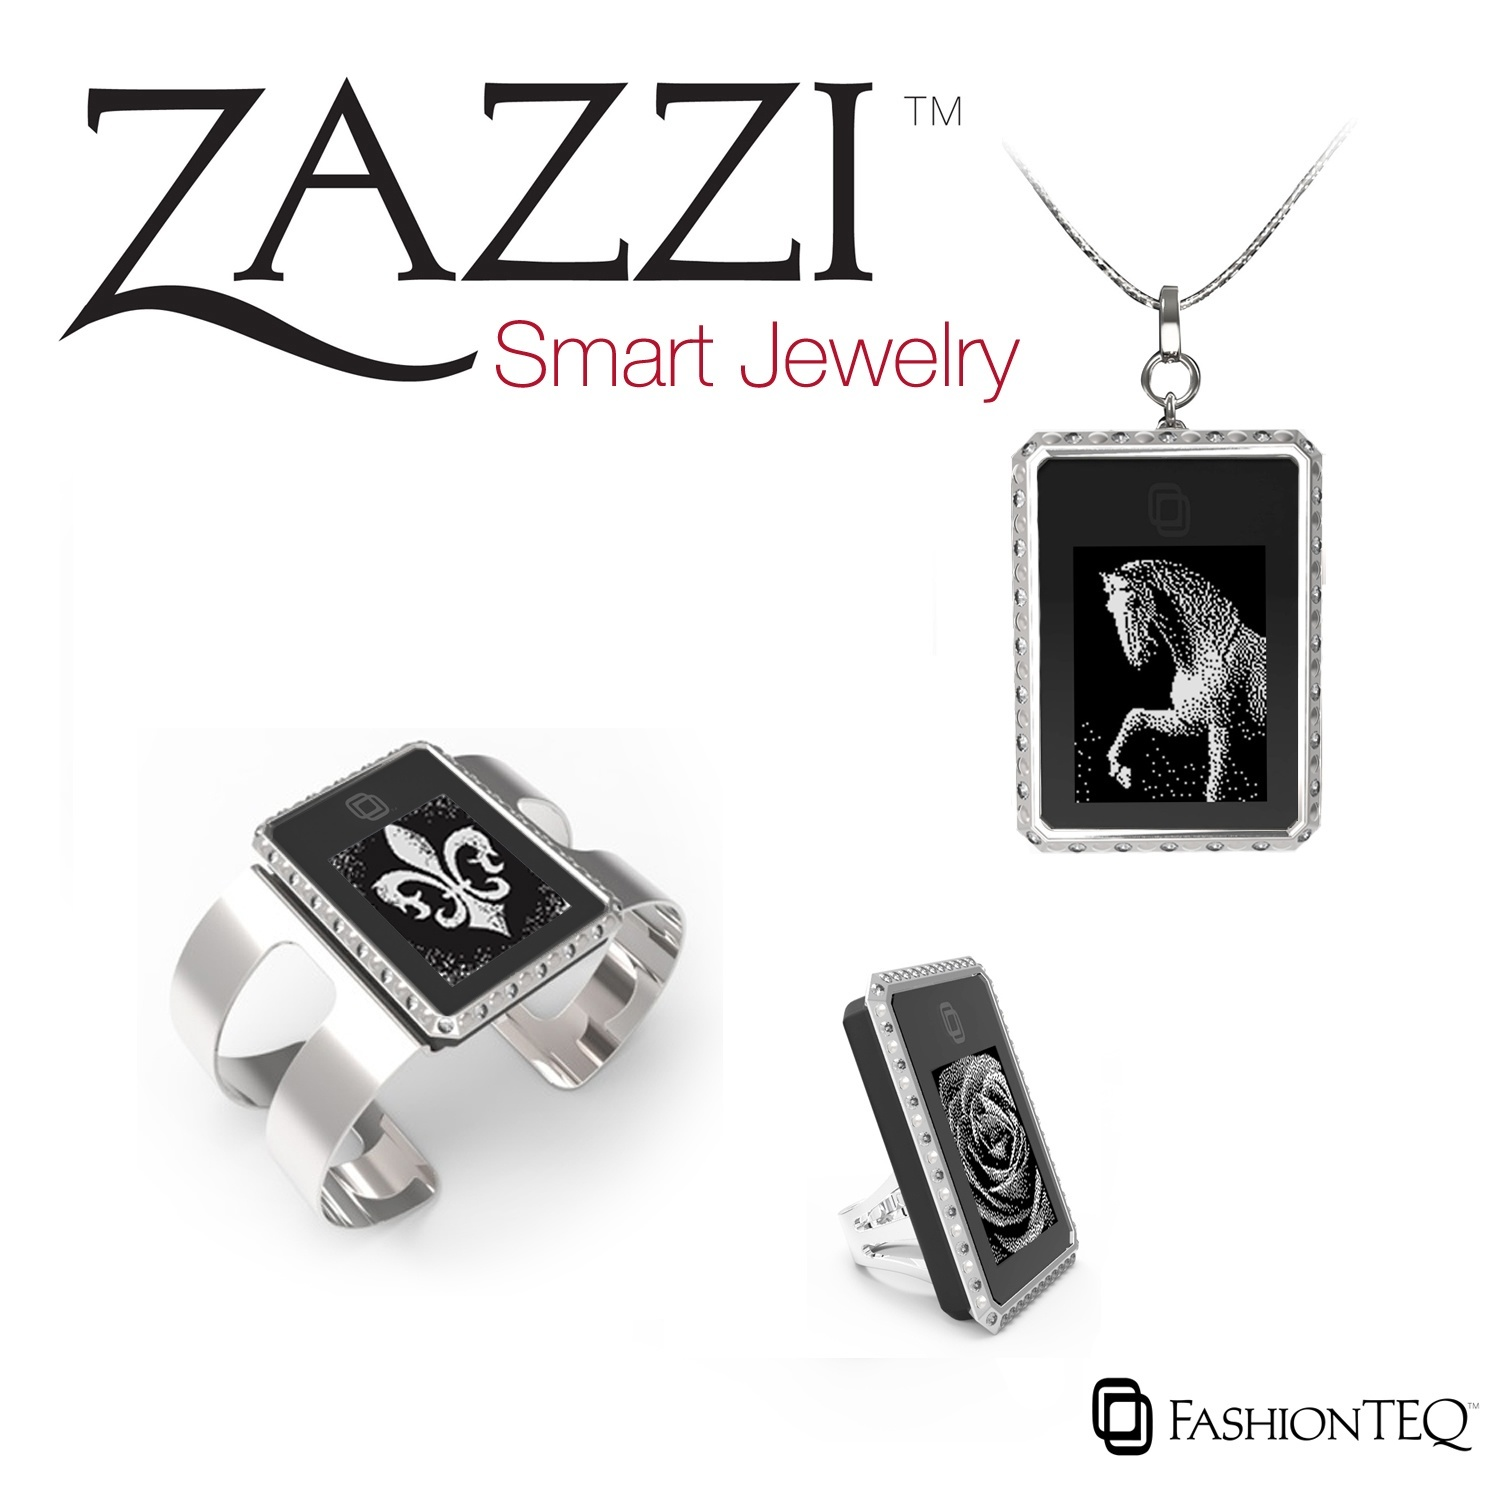 Zazzi Smart Jewelry with Notification Alerts